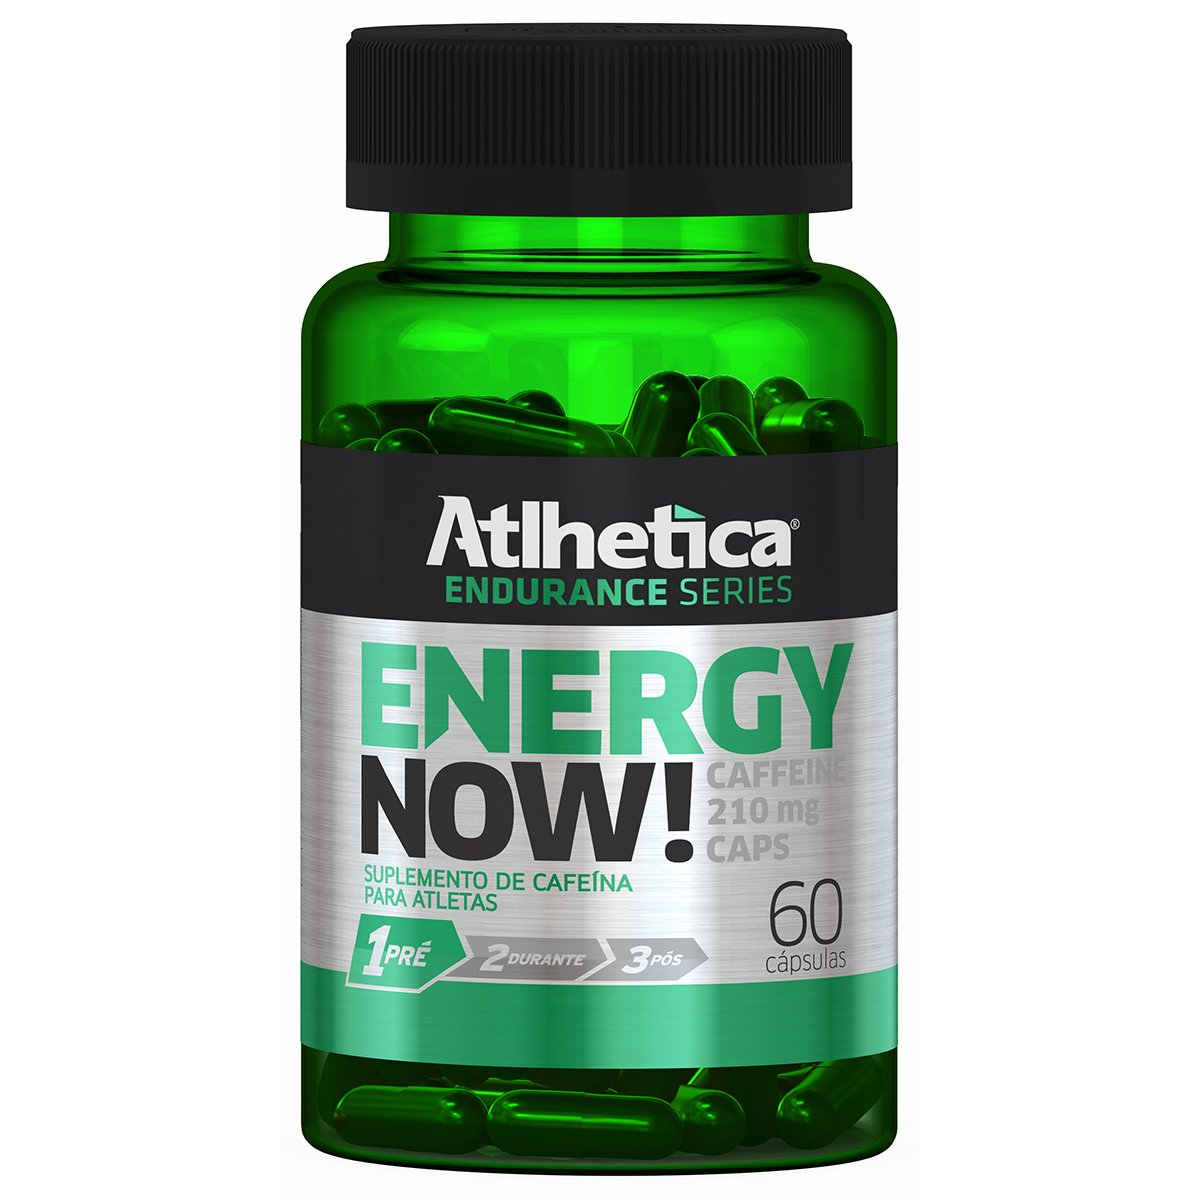 5b8ce35c2 Energy Now 60 Cáps - Atlhetica Nutrition